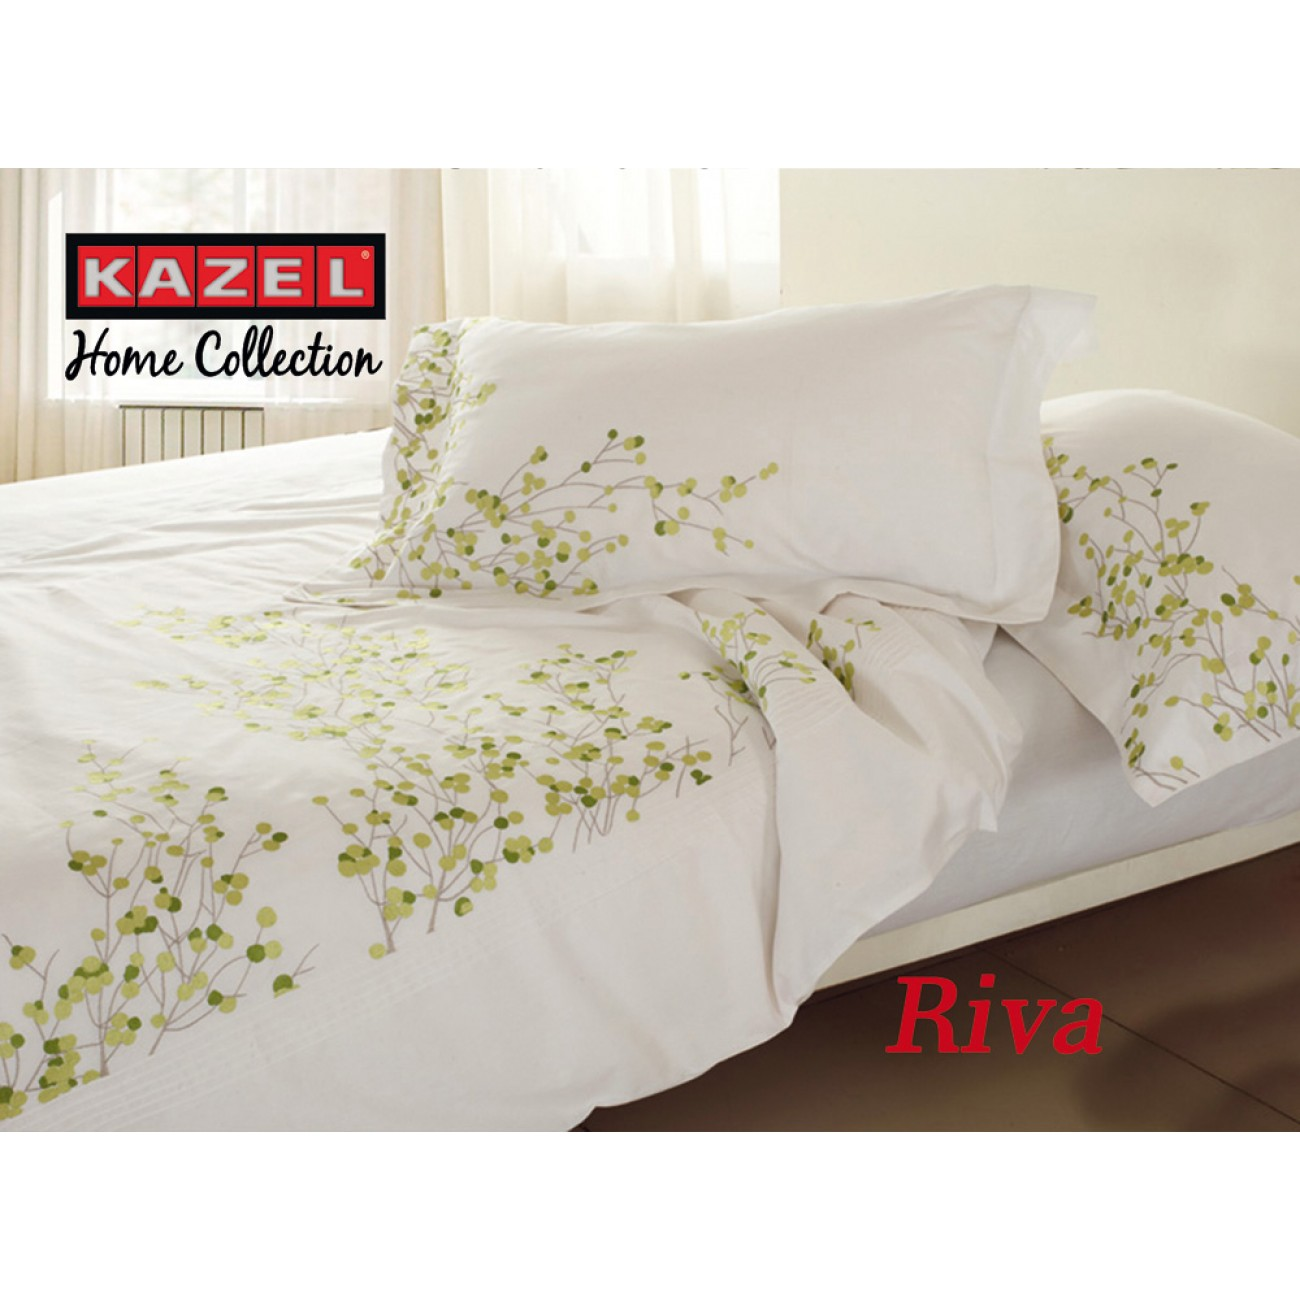 Fabric mako-satin for bed linen: composition, properties, reviews 53